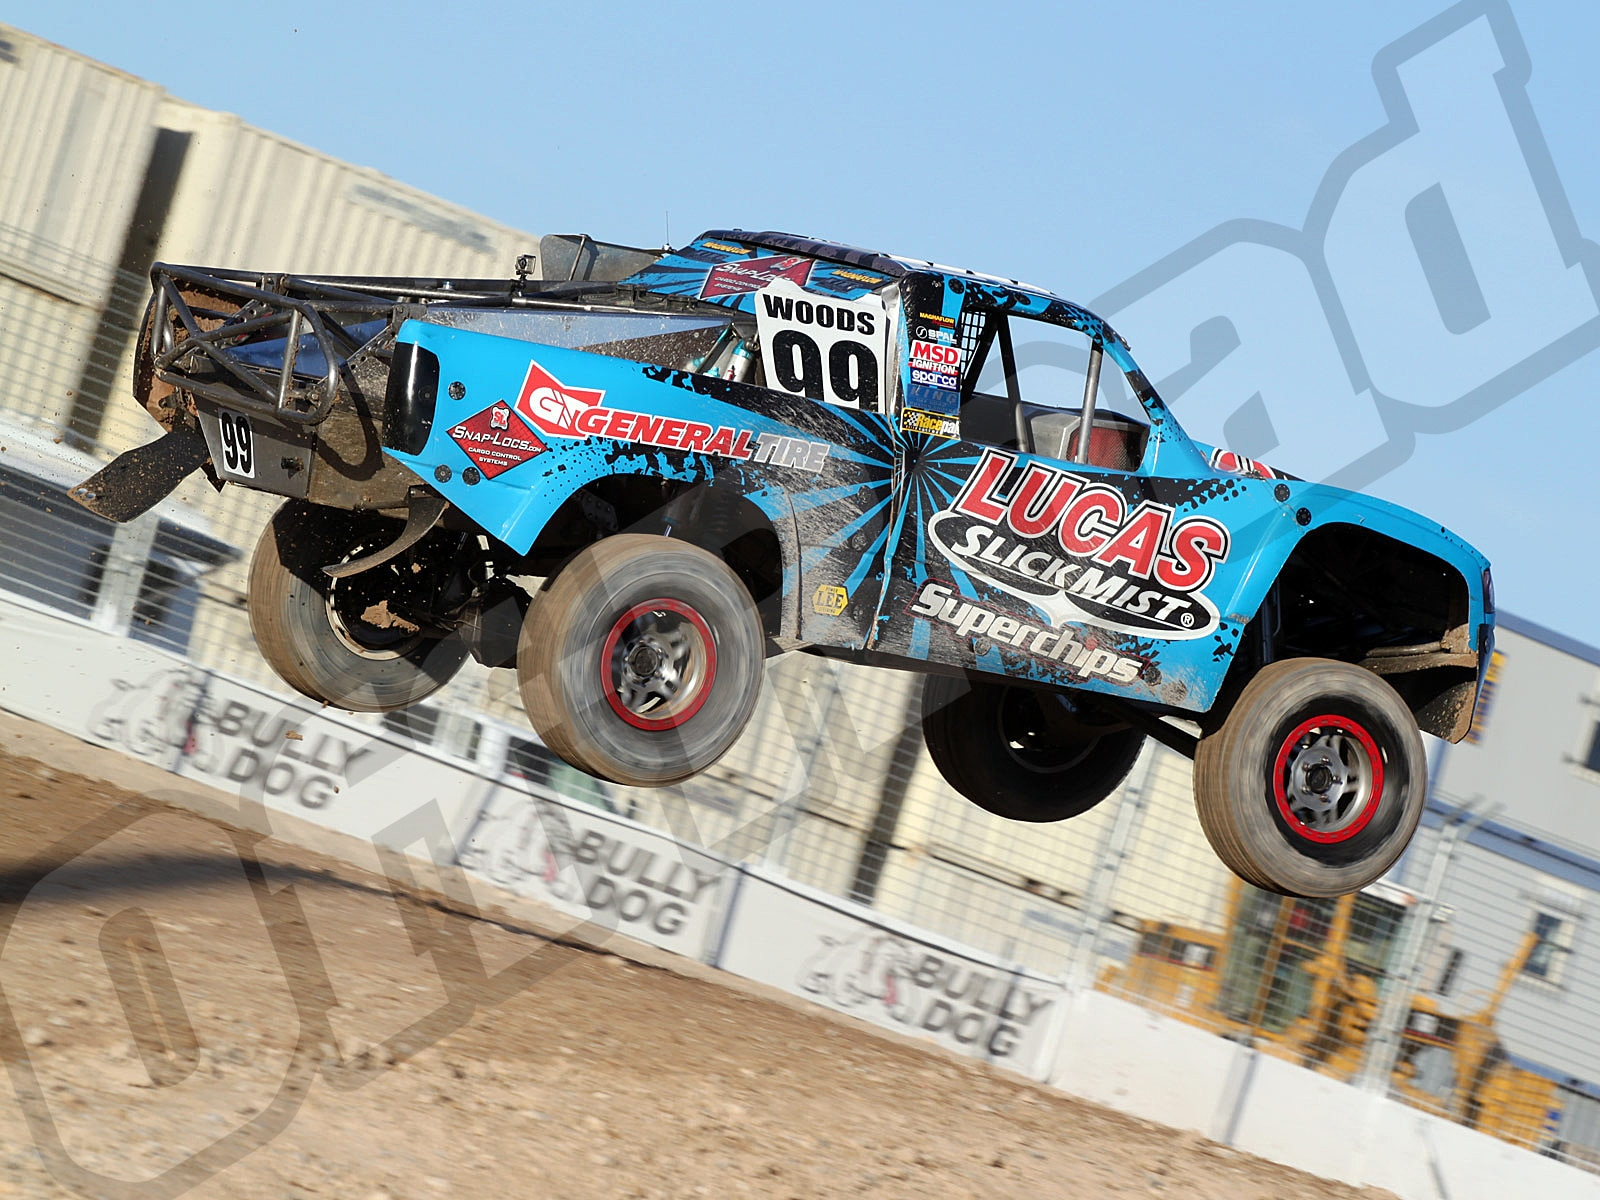 111610or 9334+2010 lucas oil off road racing series+pro 2